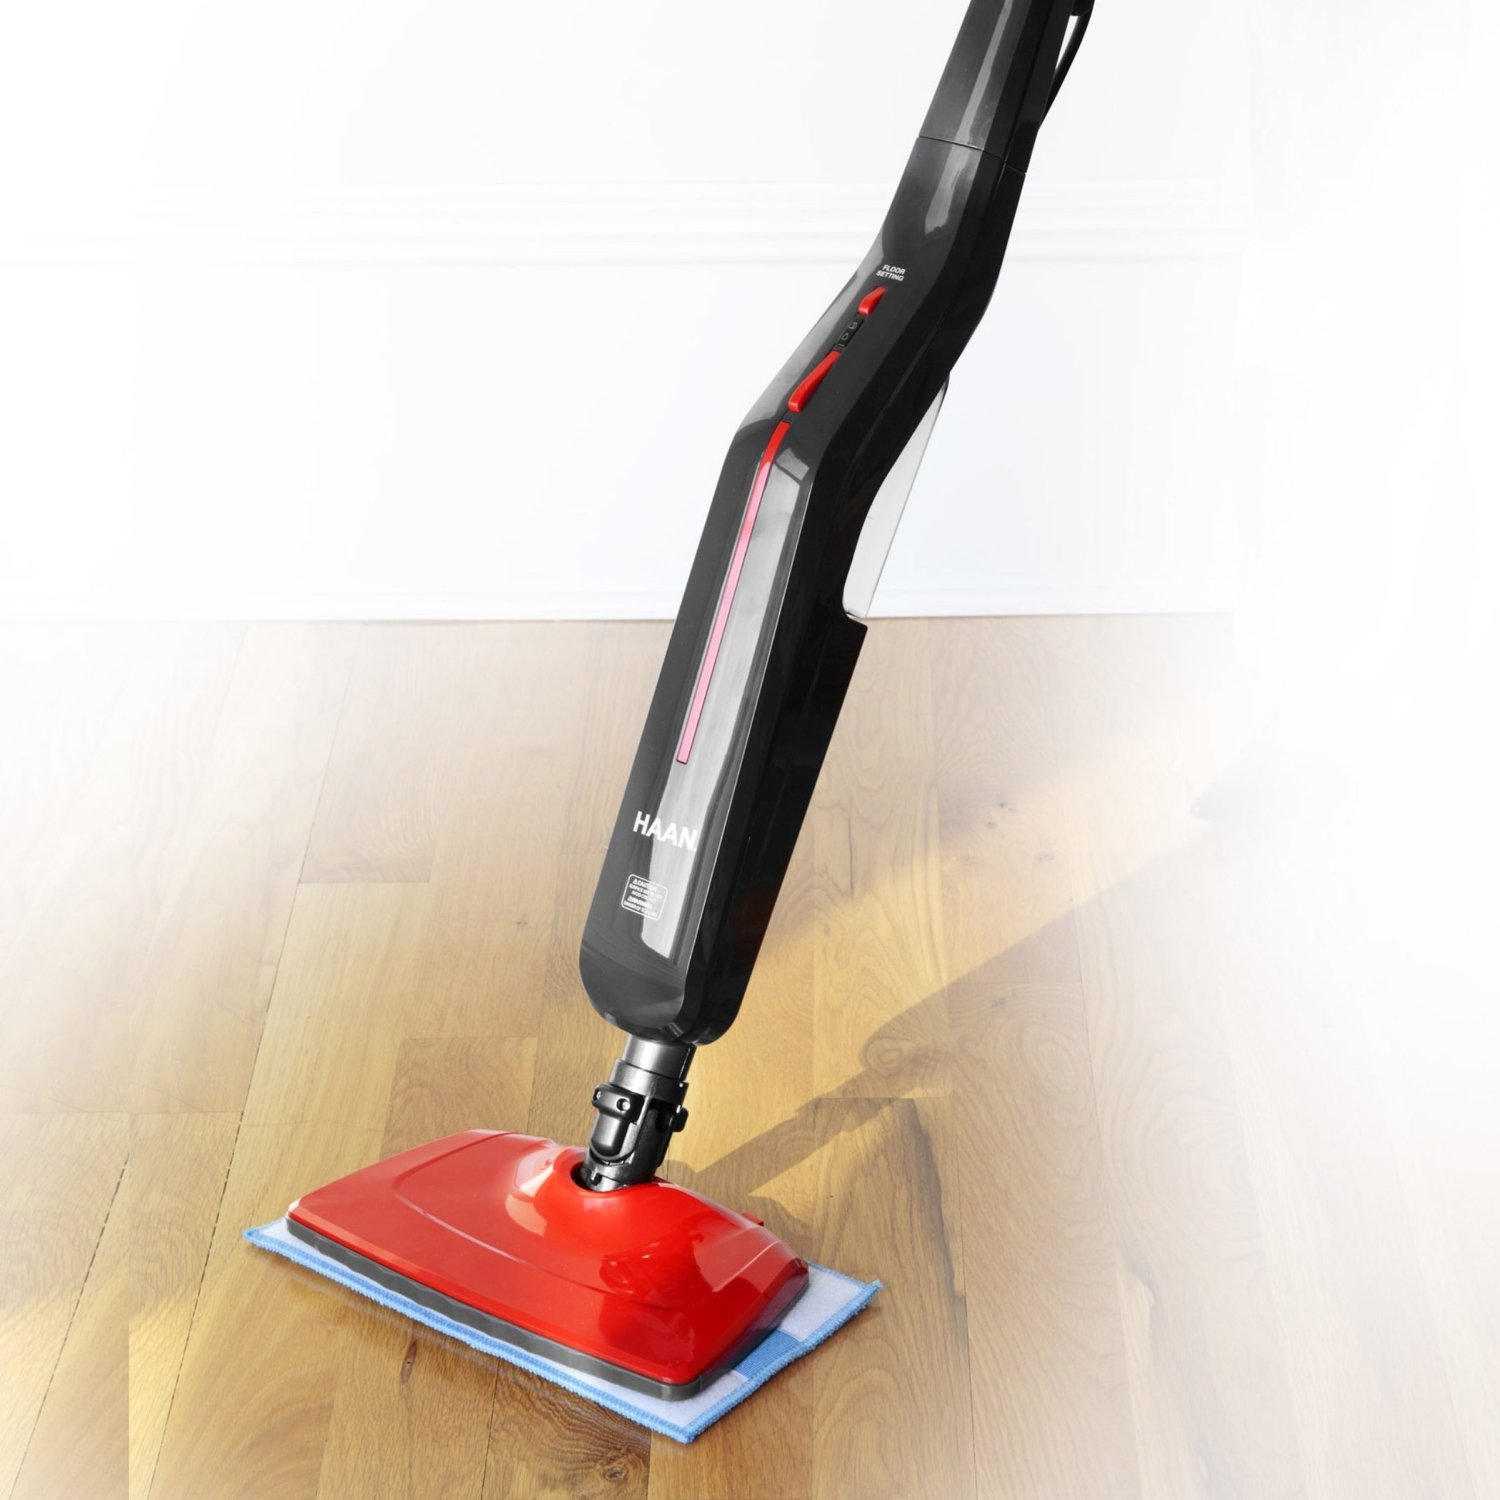 The Best Steam Mop For Wooden Floors